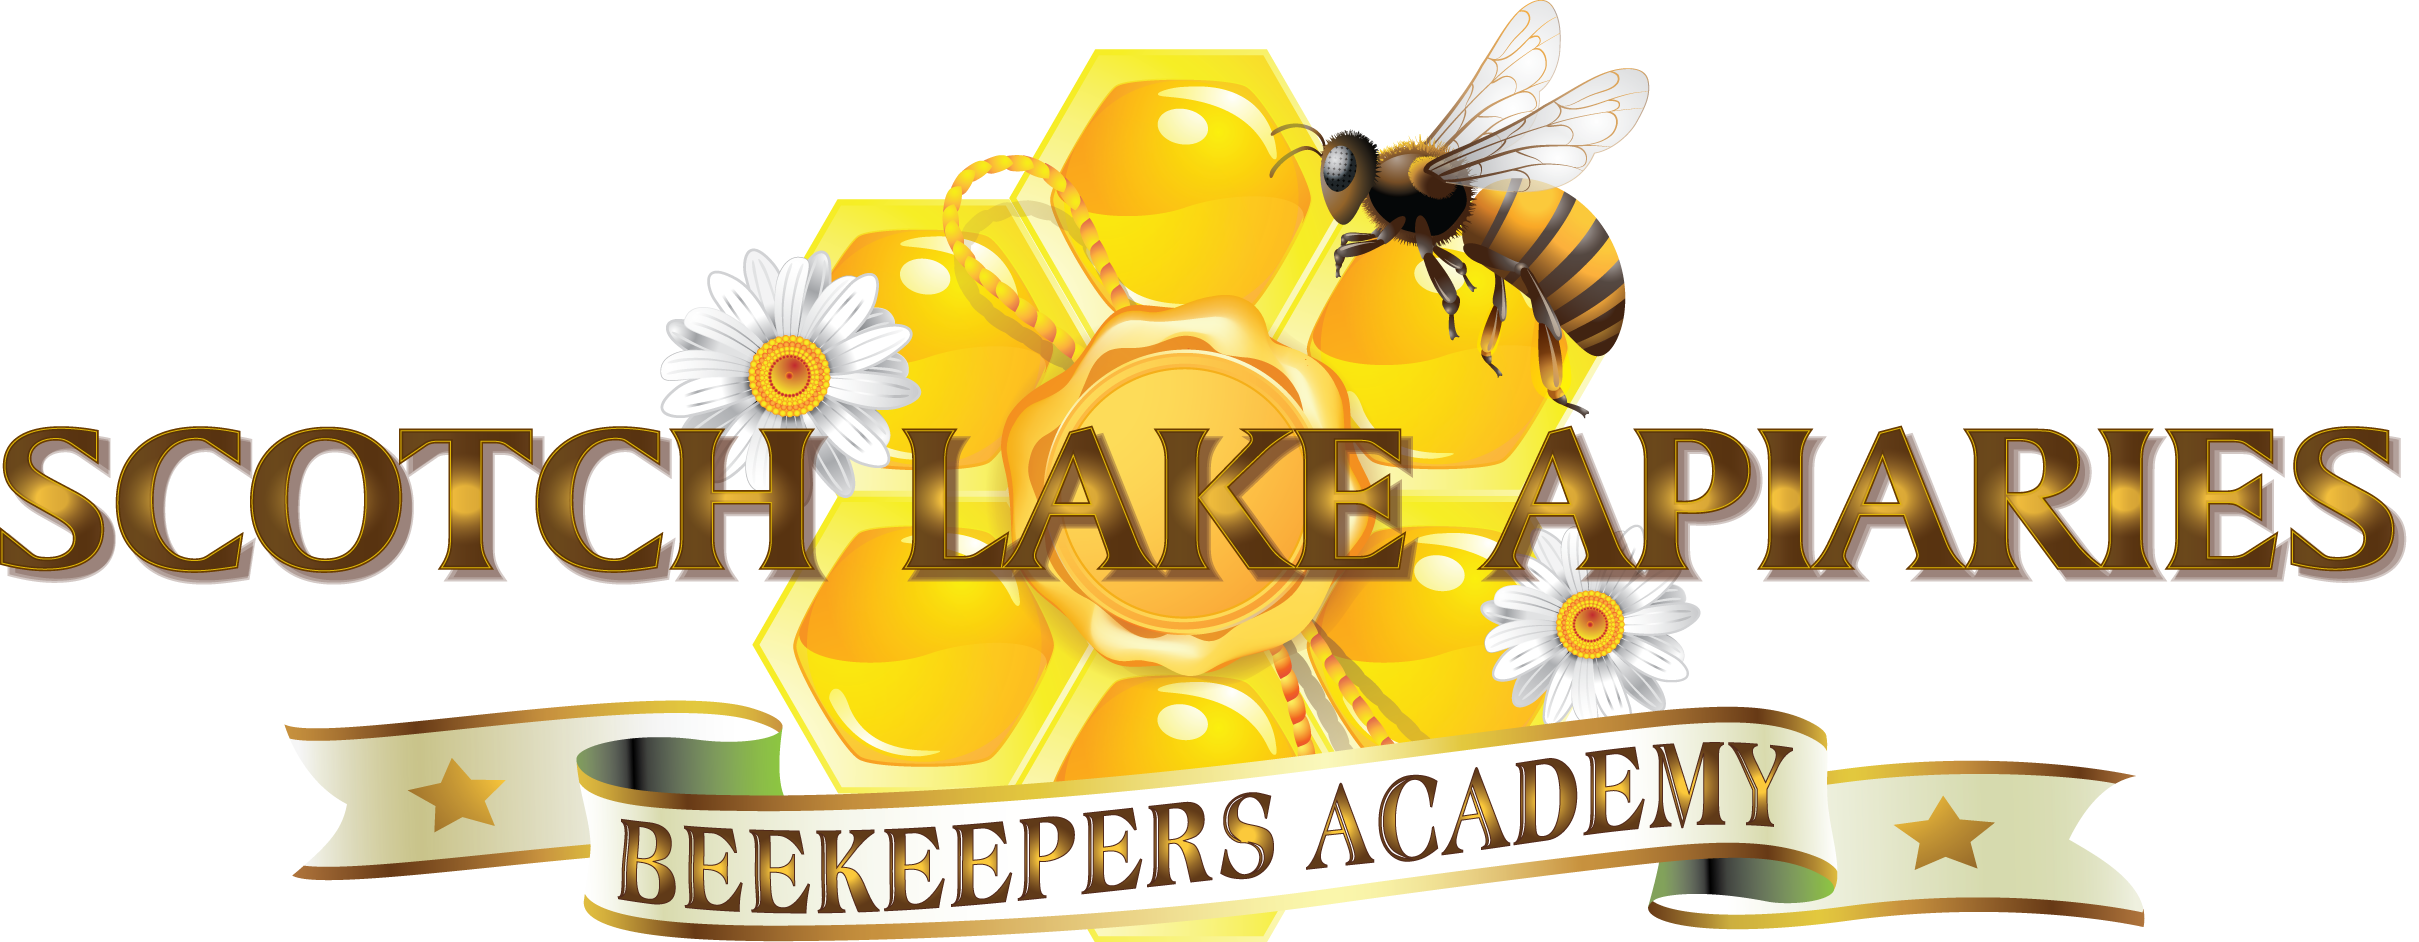 Scotch Lake Apiaries - Beekeepers Academy Seal